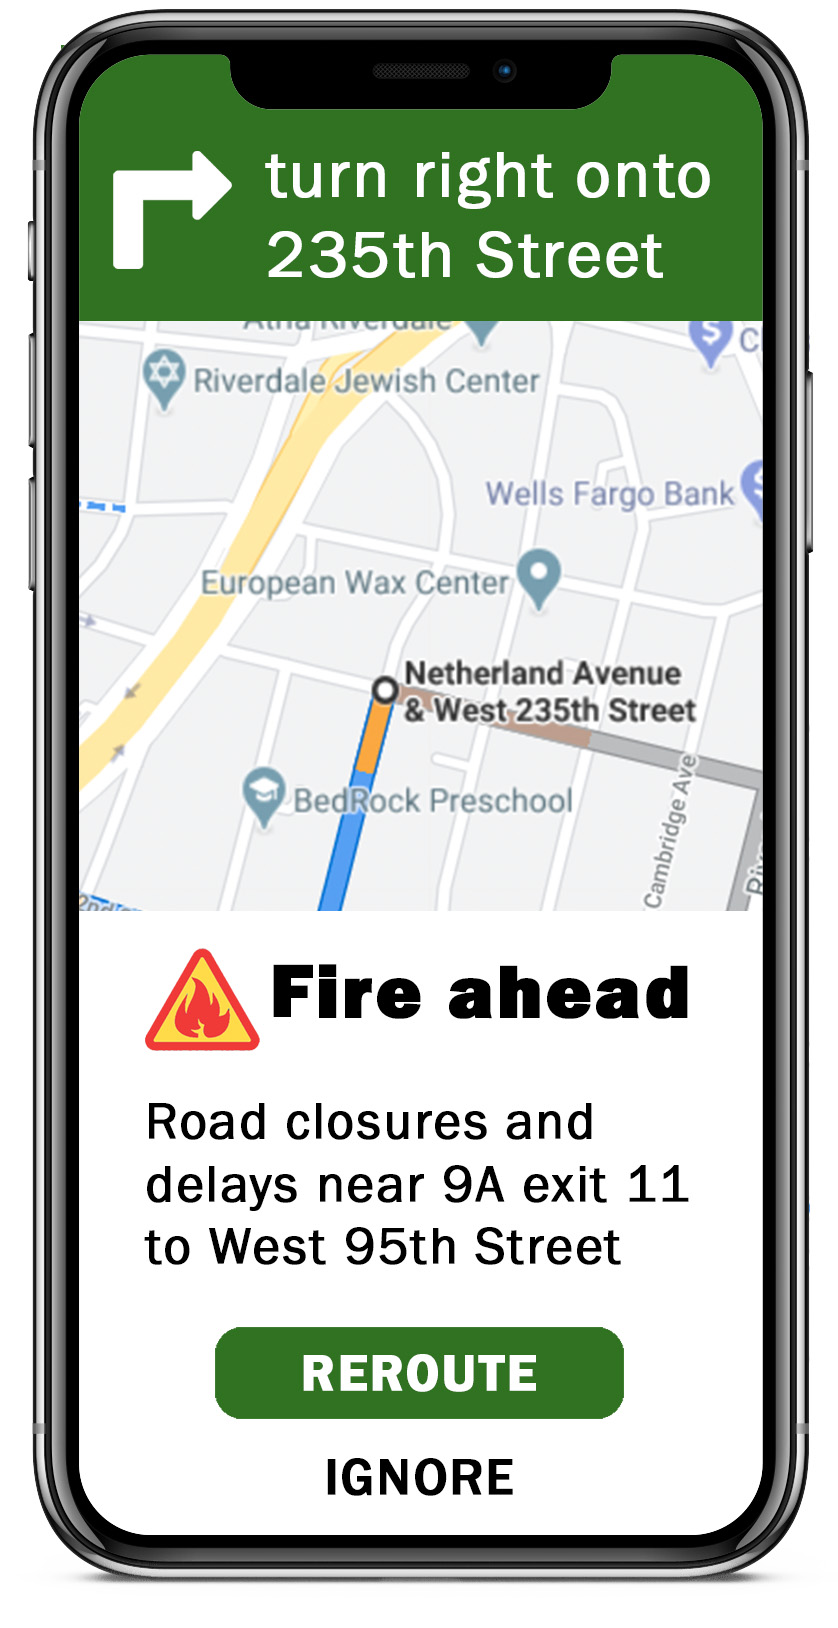 headline: Fire ahead           body: Road closures and delays near 9A exit 11 to West 95th Street           Buttons: REROUTE, IGNORE